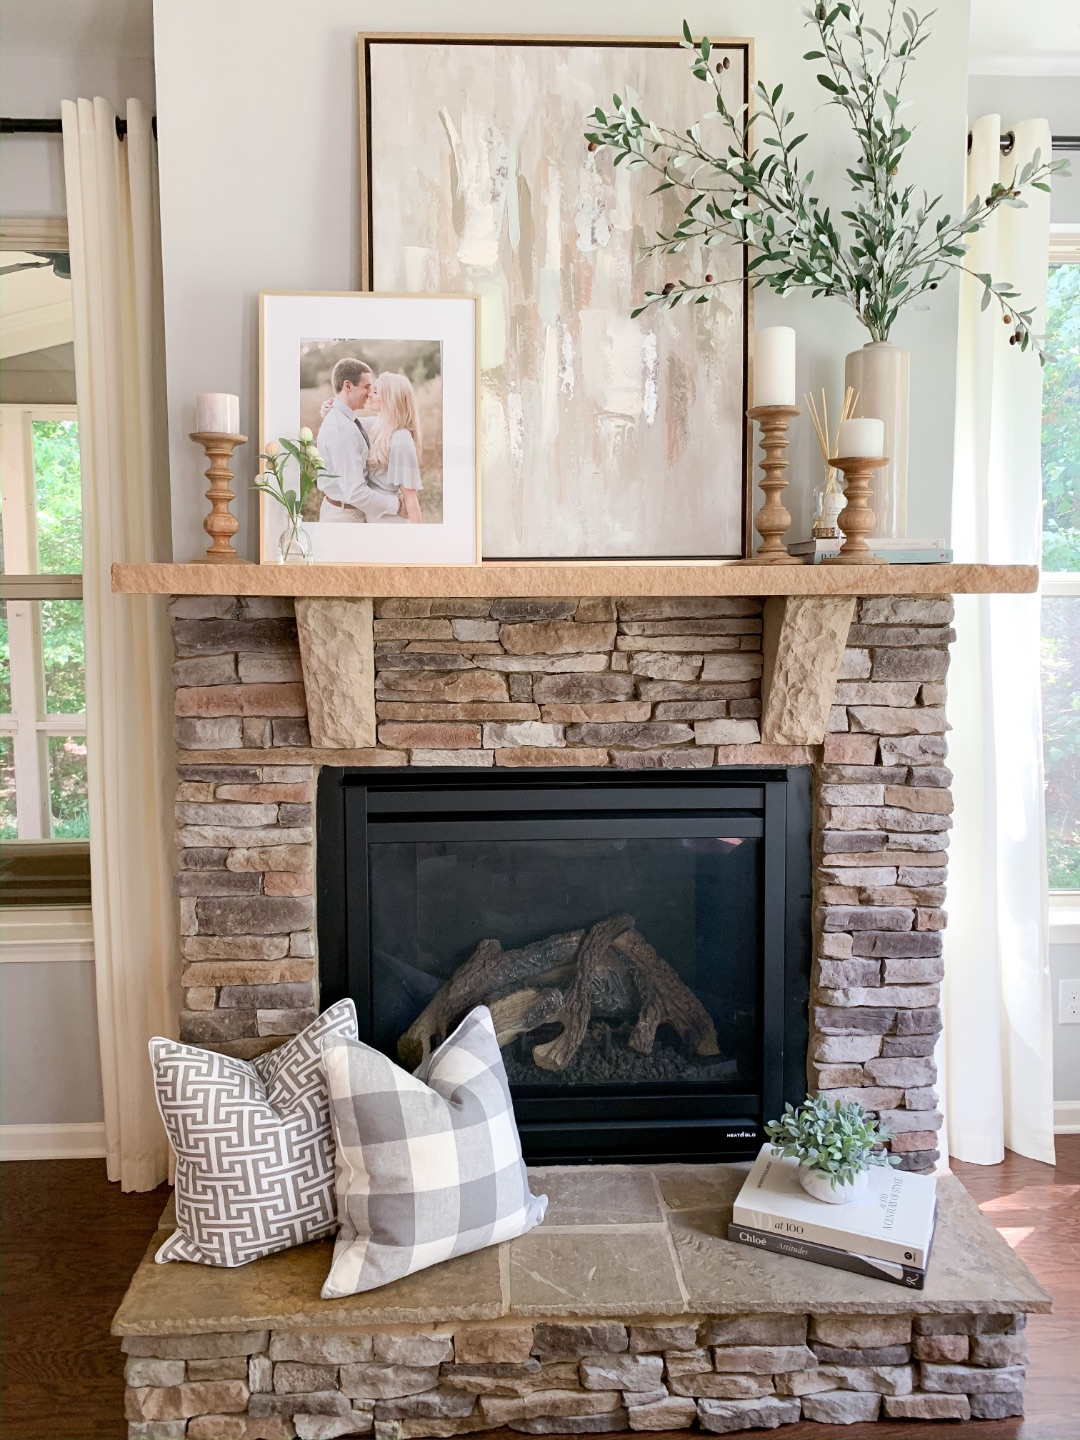 Neutral Fireplace Mantel Decor Ideas Strawberry Chic Amanda John Strawberry Chic